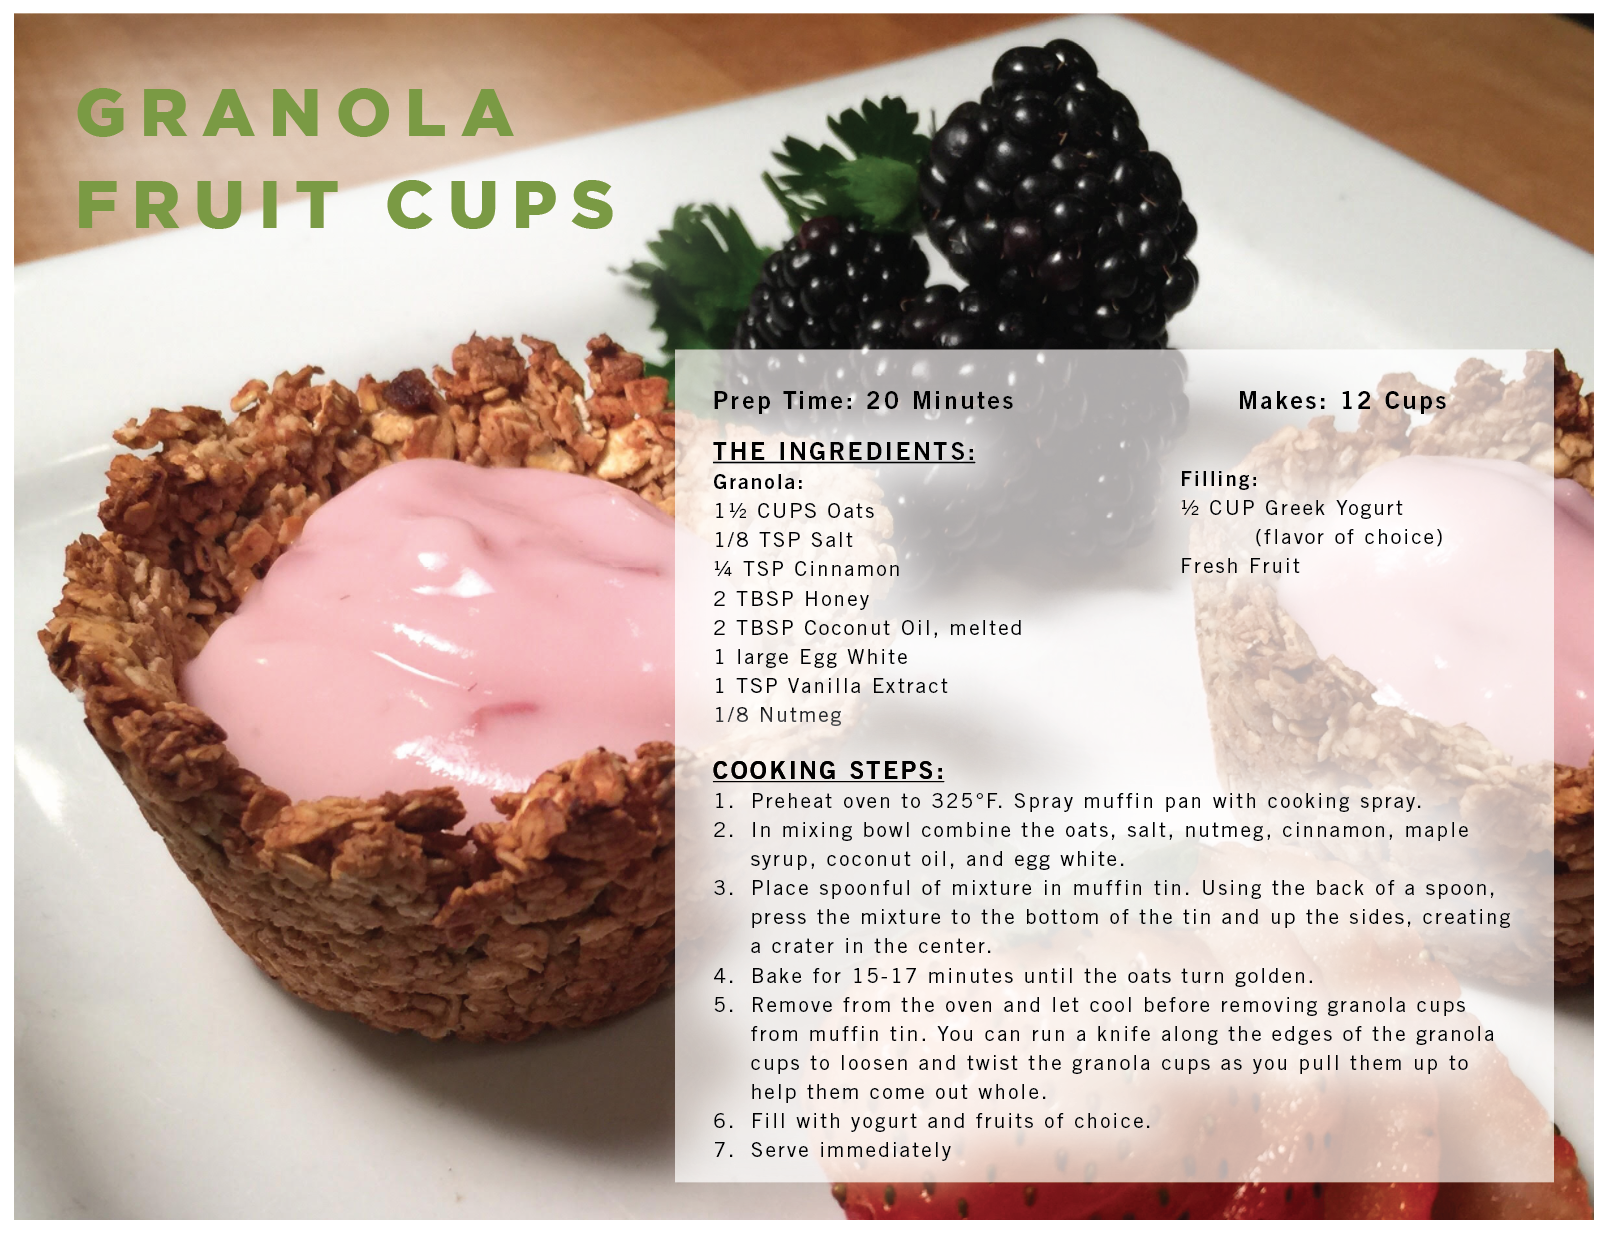 Granola Fruit Cups recipe card